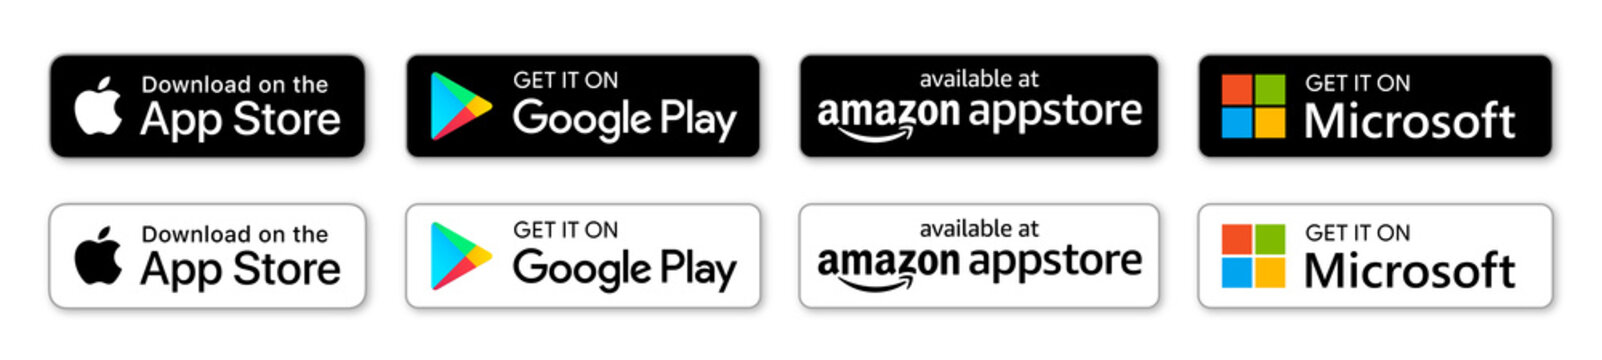 Apple App store, Google Play store, Microsoft store, Amazon Appstore: download App buttons. Isolated black icons set on white background. Download mobile application, UI elements. Vector illustration